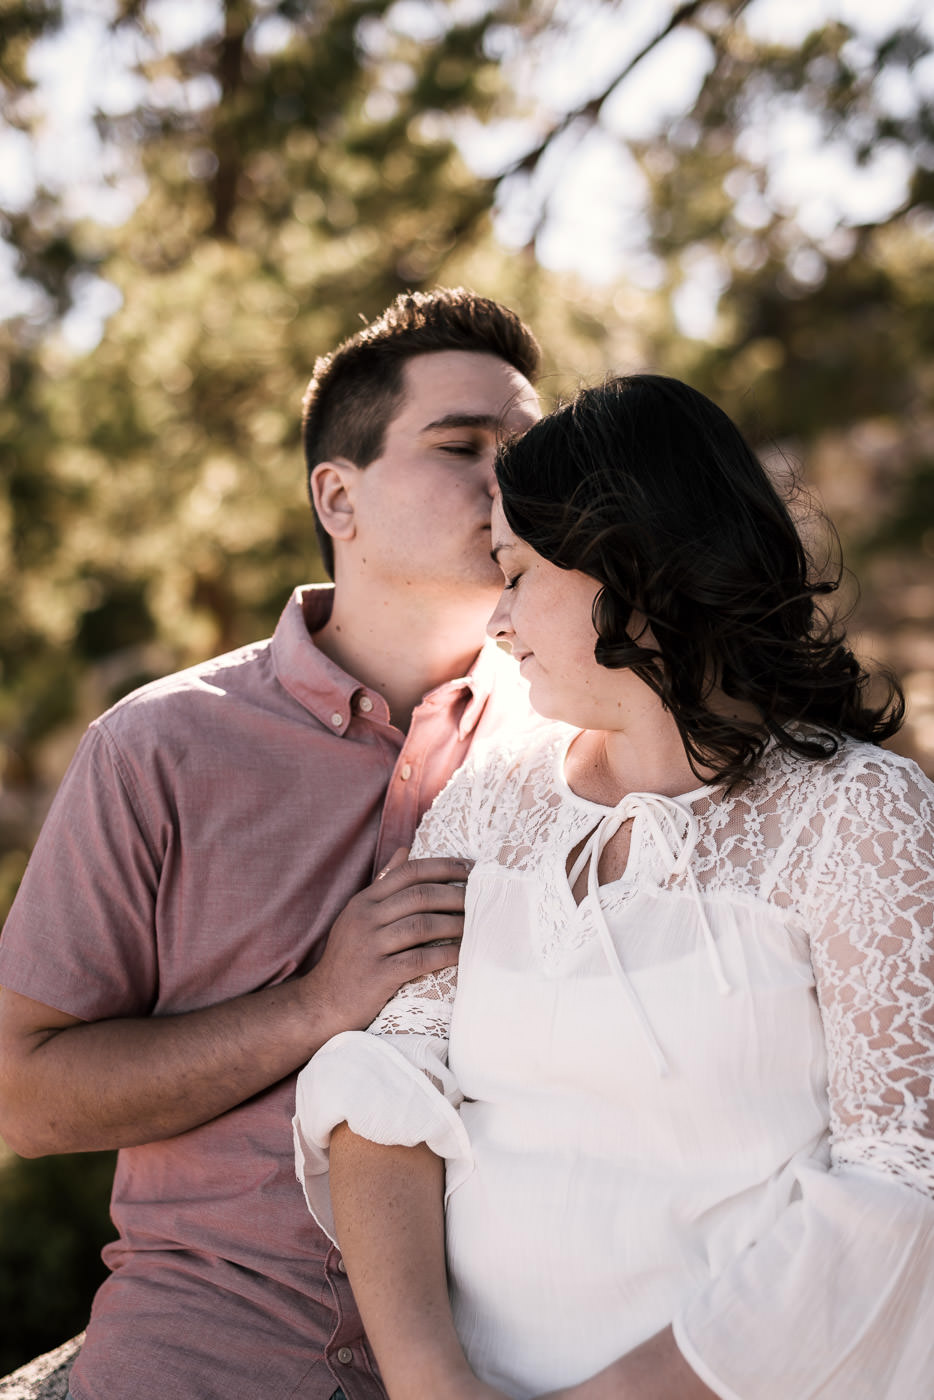 Sweet forehead kisses during this engagement shoot.